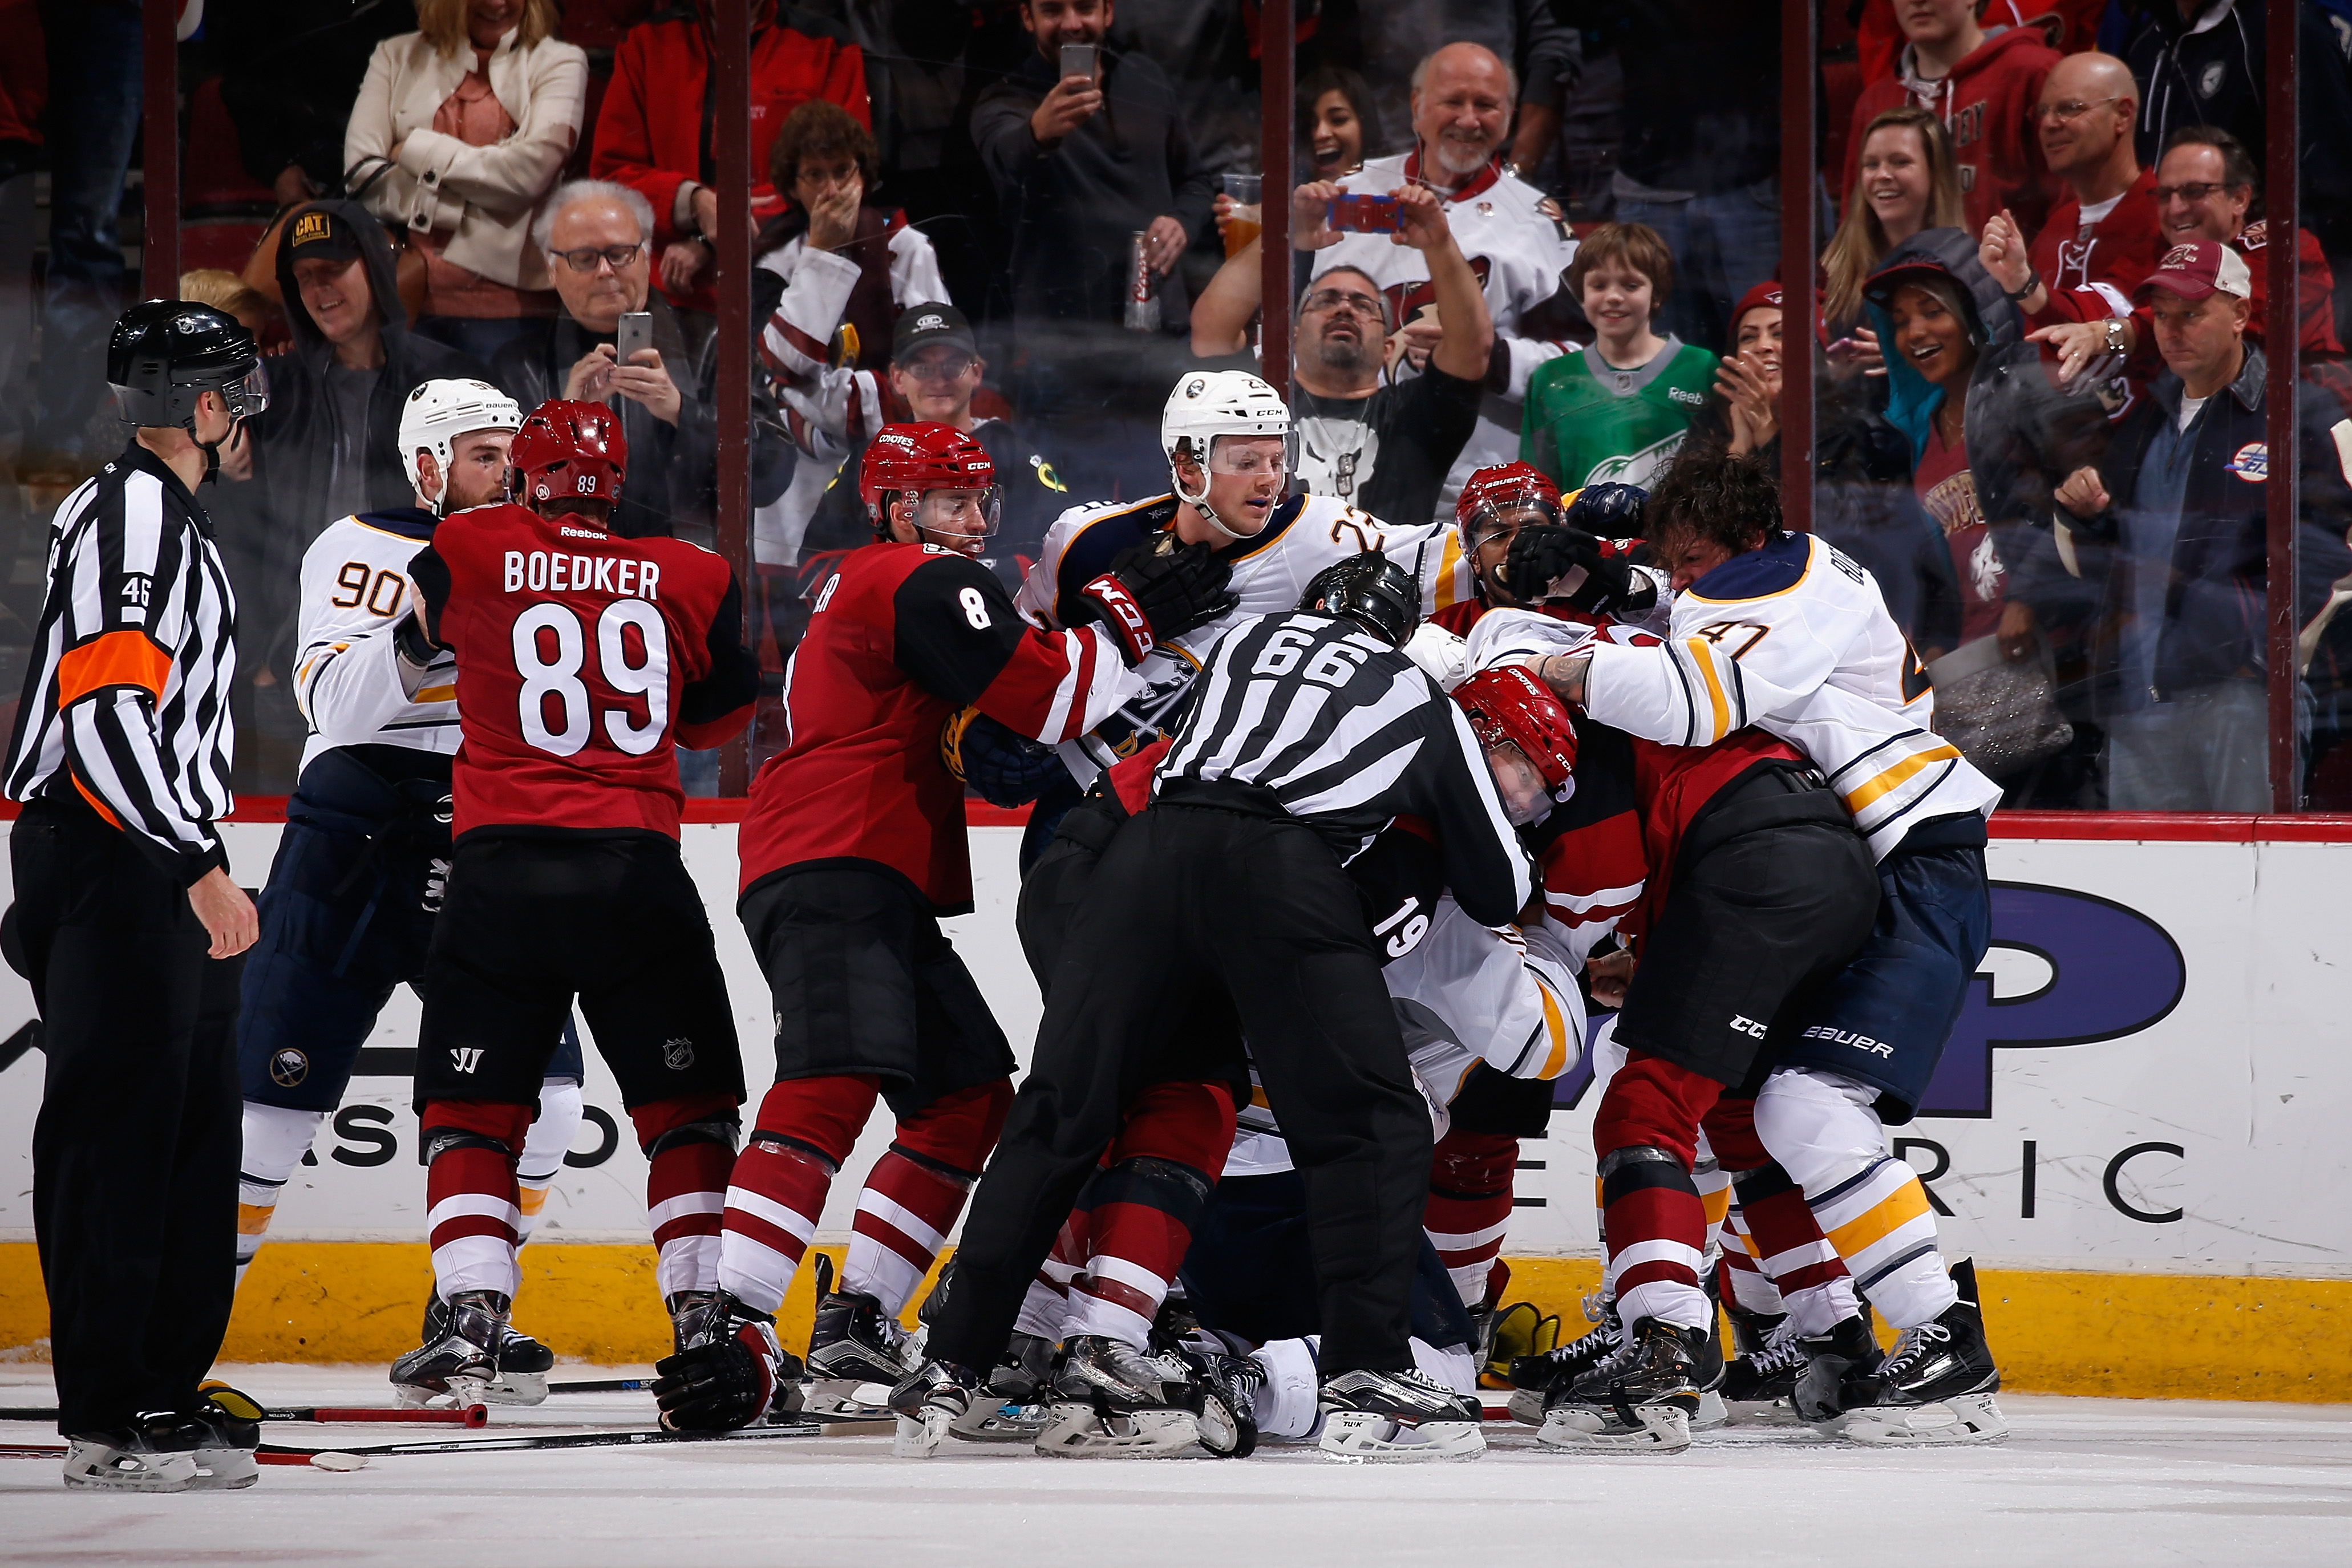 The Sabres and Coyotes got together for a postgame scrum. (Getty Images)